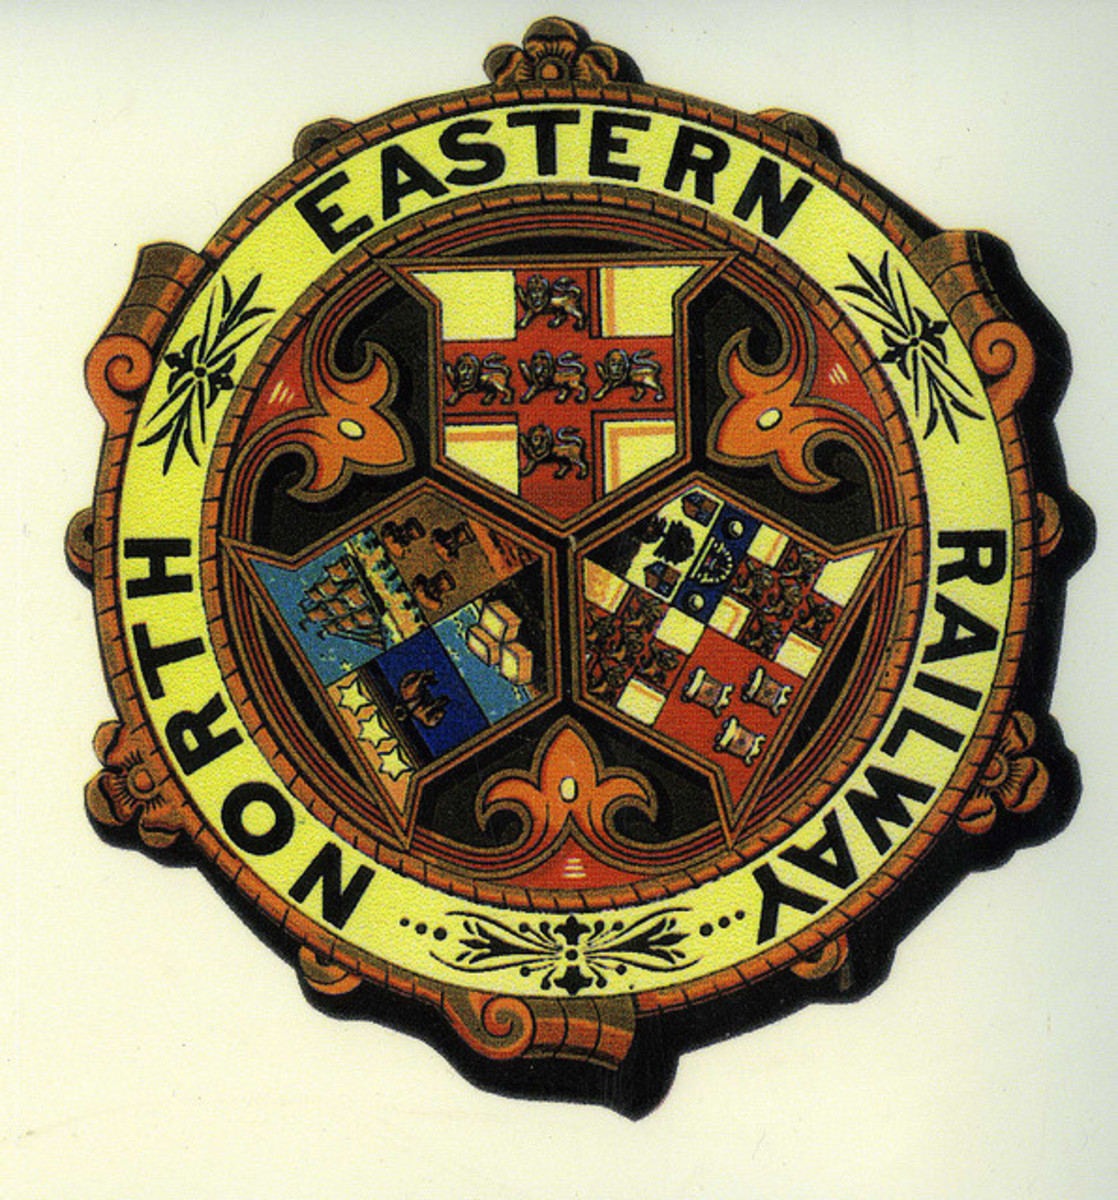 The three constituents that made up the original North Eastern Railway in 1854 were (from left to right) the Leeds Northern, the York & North Midland and the York, Newcastle & Berwick Railway companies